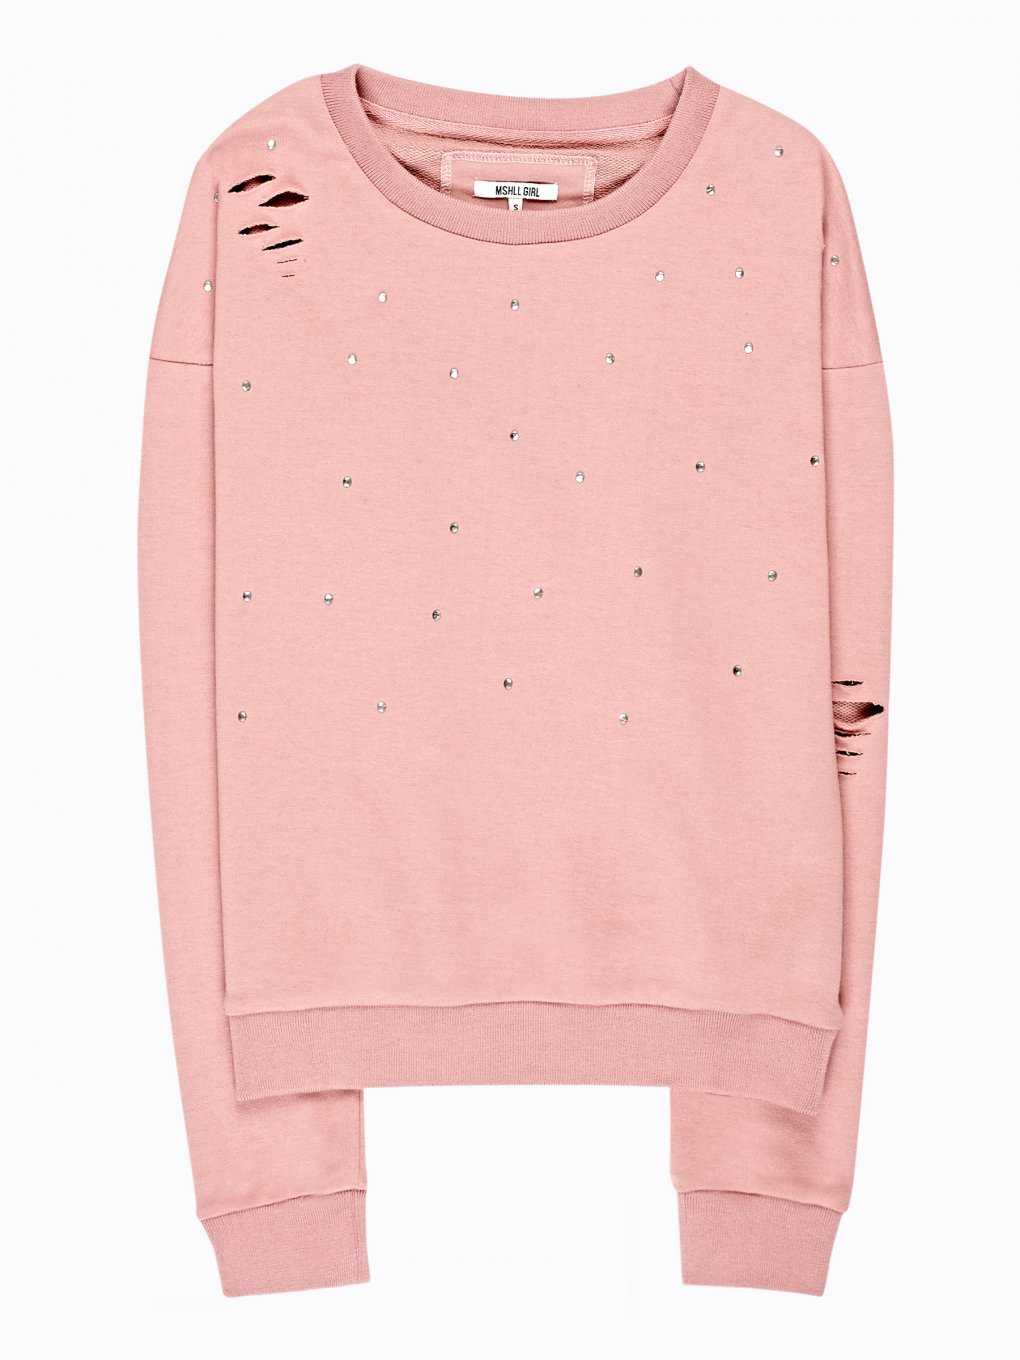 Distressed sweatrshirt with stones